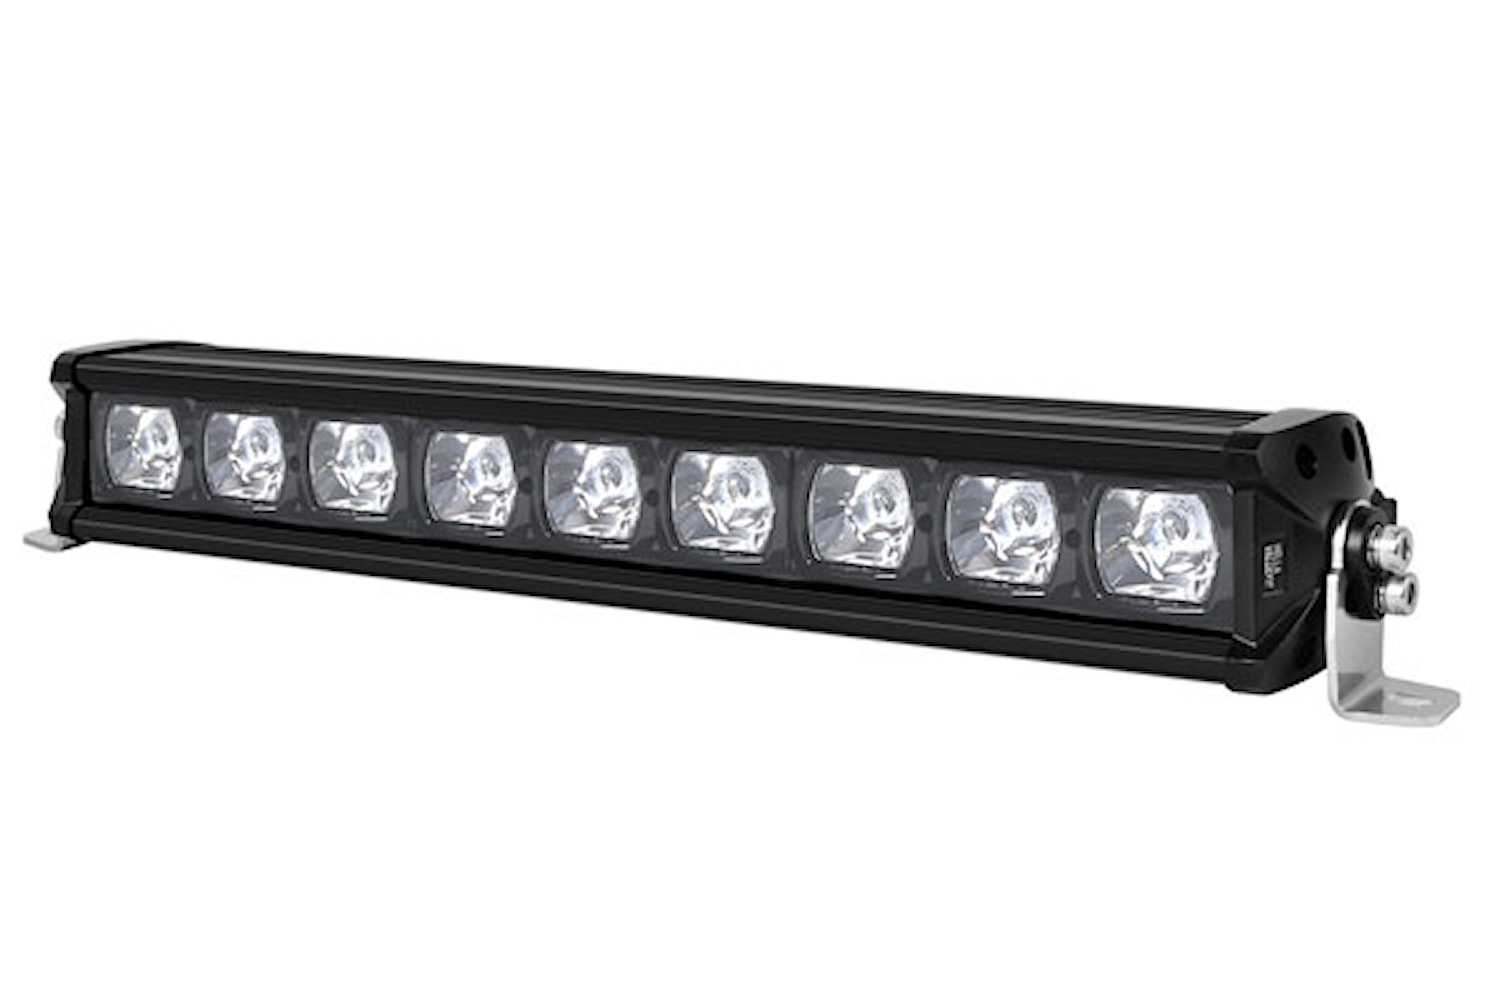 Extraljusramp DLB-540 LED